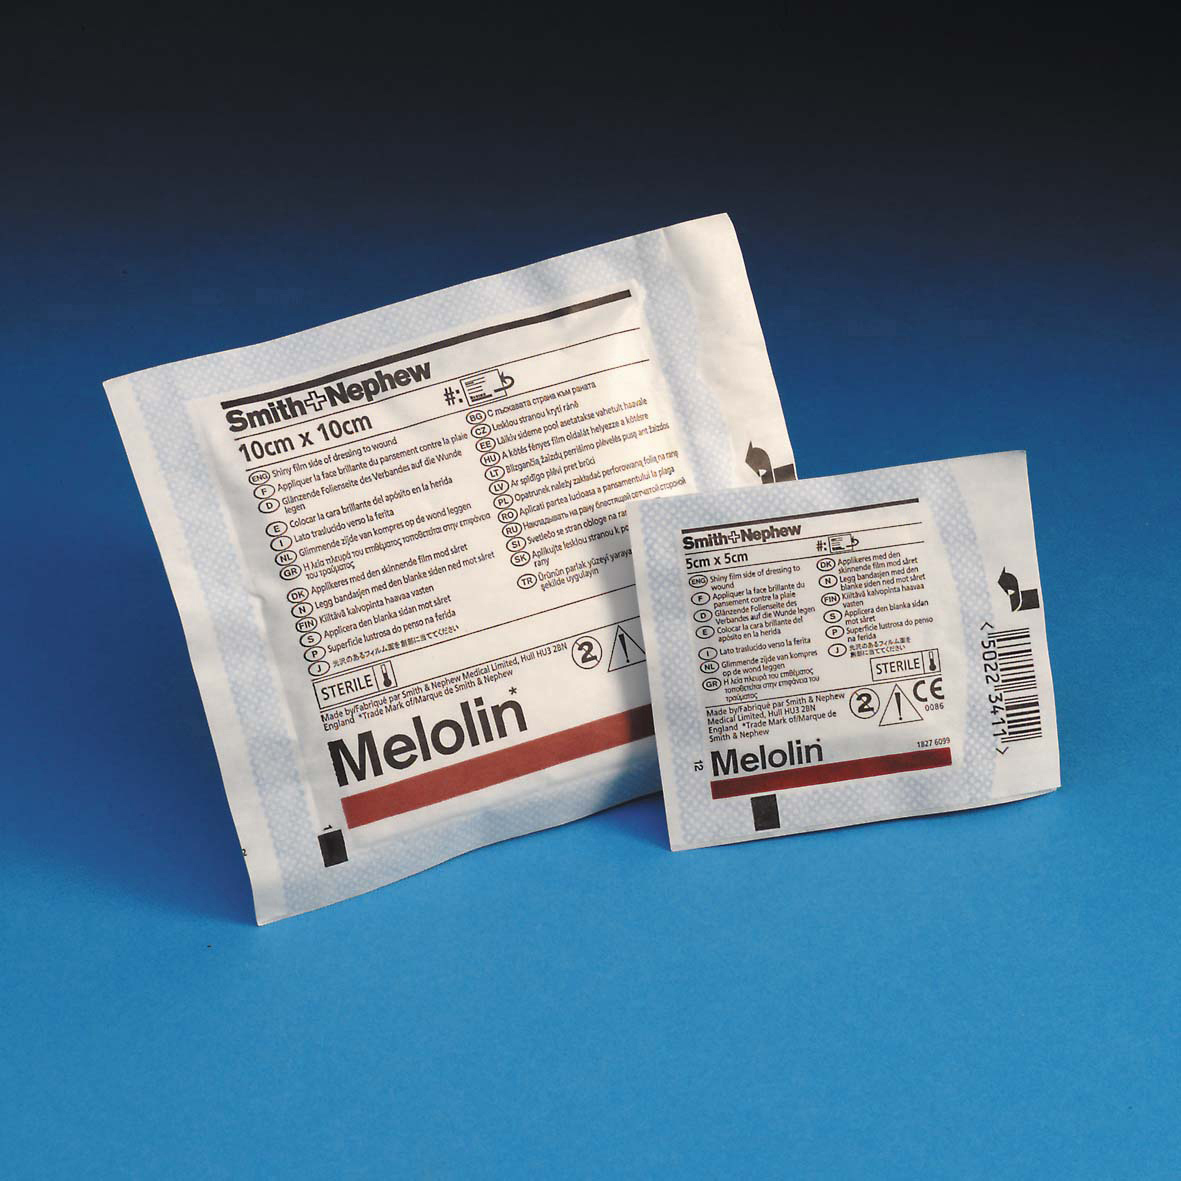 Smith Amp Nephew Melolin Dressing 5 X 5cm Single Hce